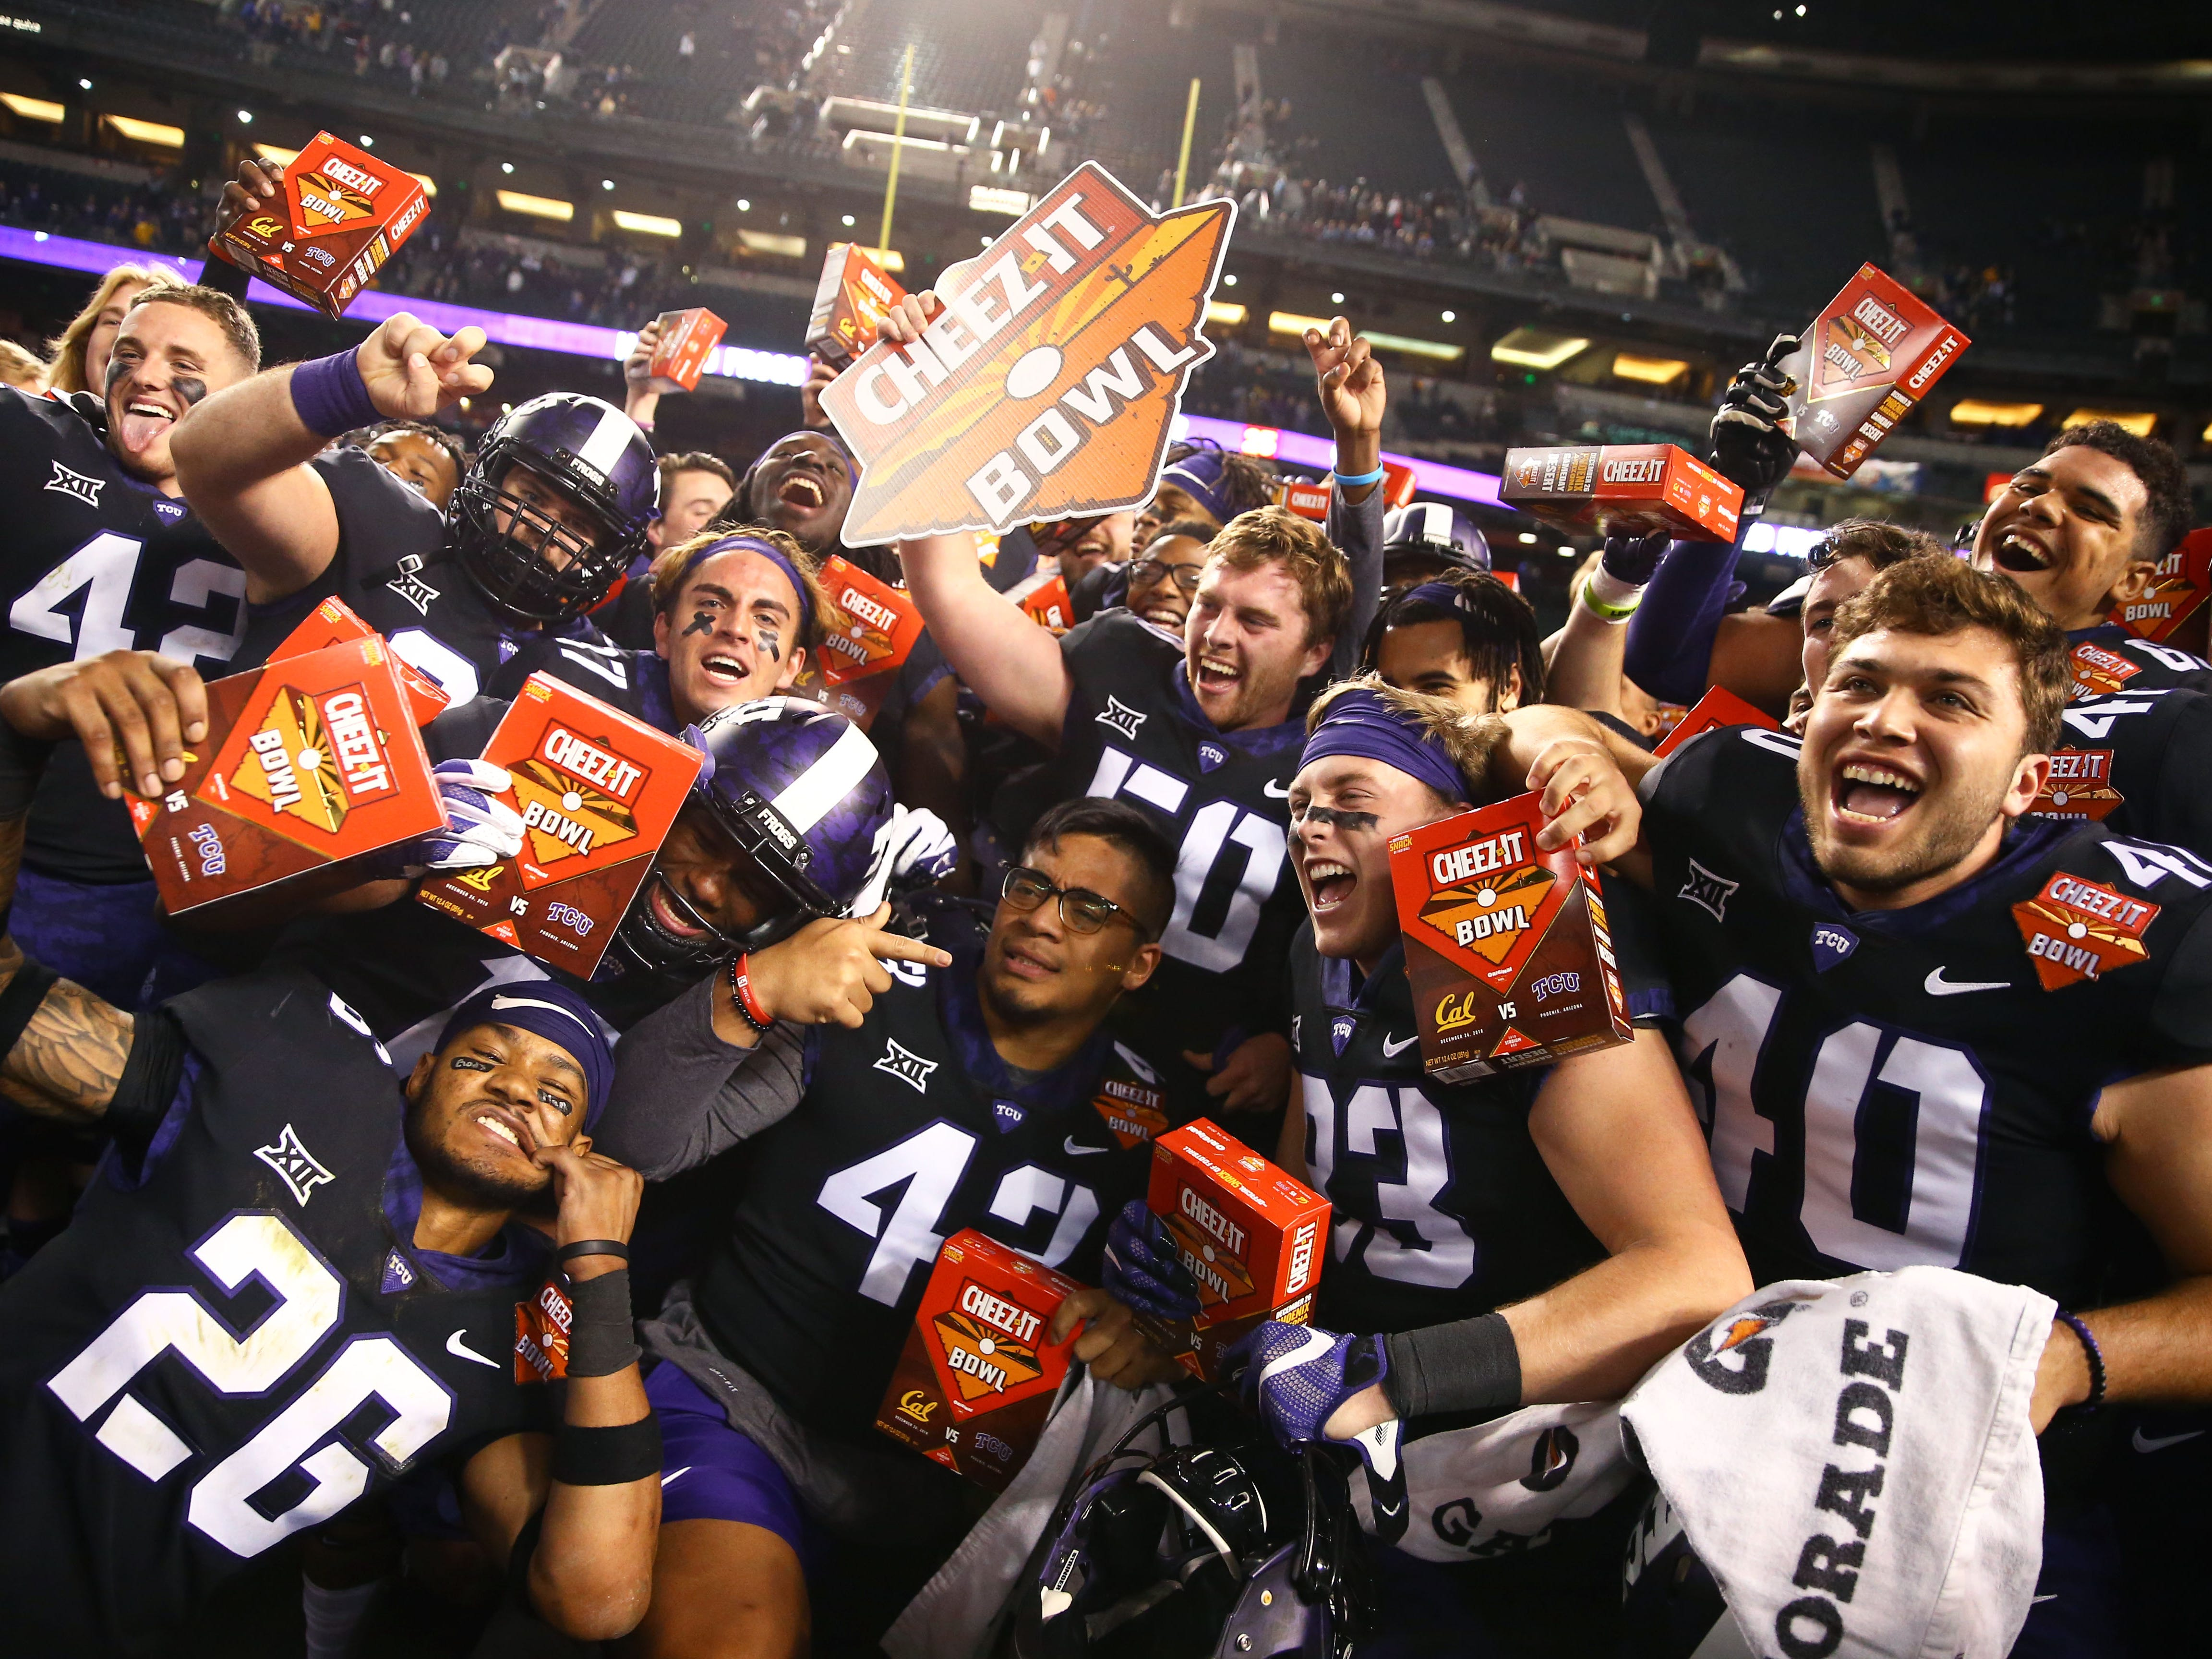 TCU players celebrate after defeating California, 10-7, in overtime of the Cheez-It Bowl at Chase Field.